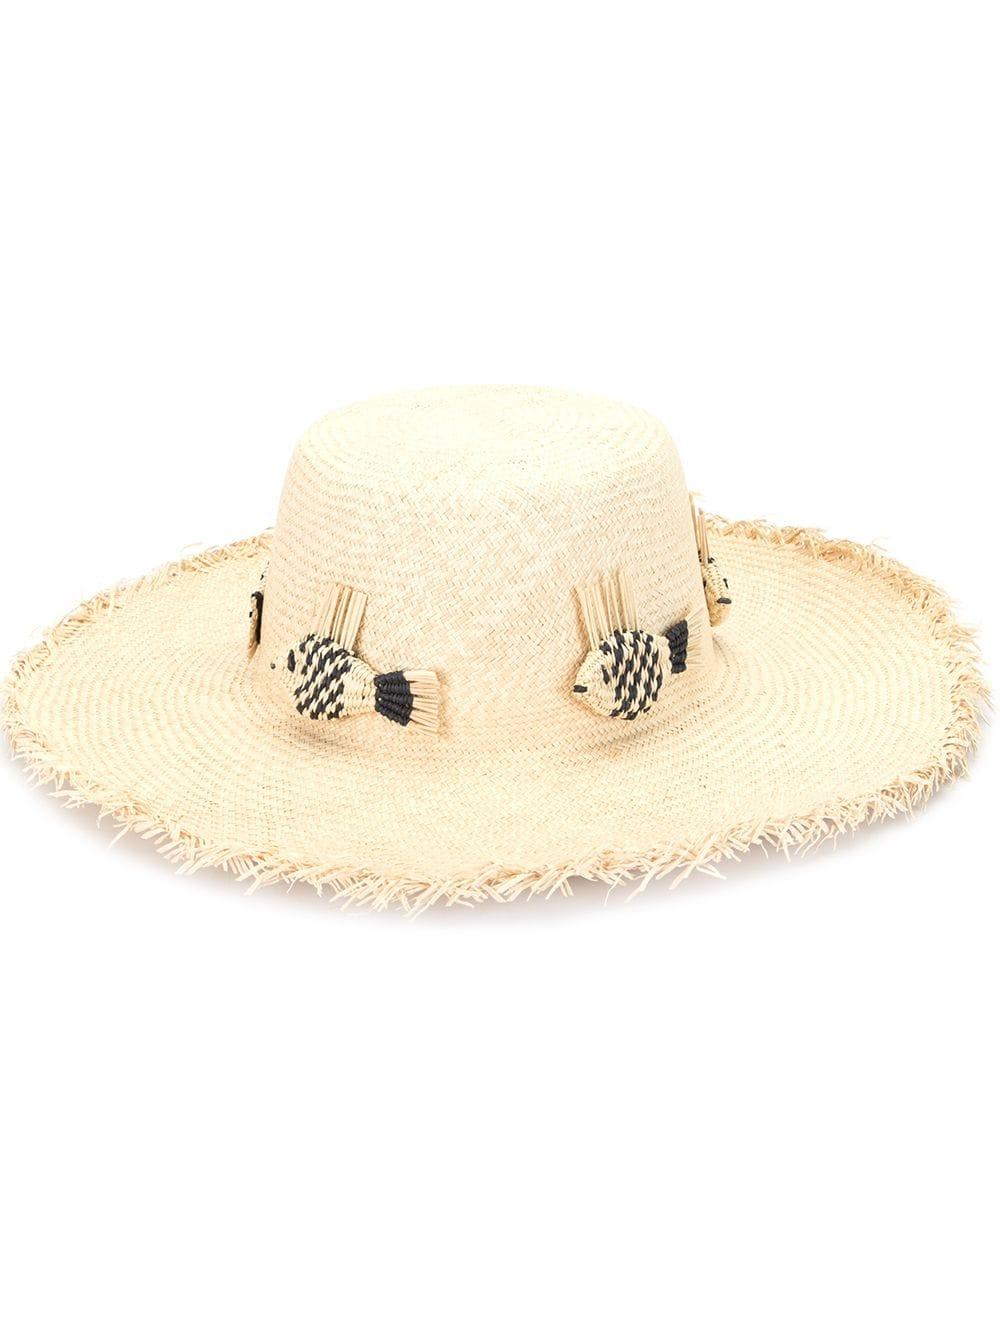 Straw Hat With Fringe Brim